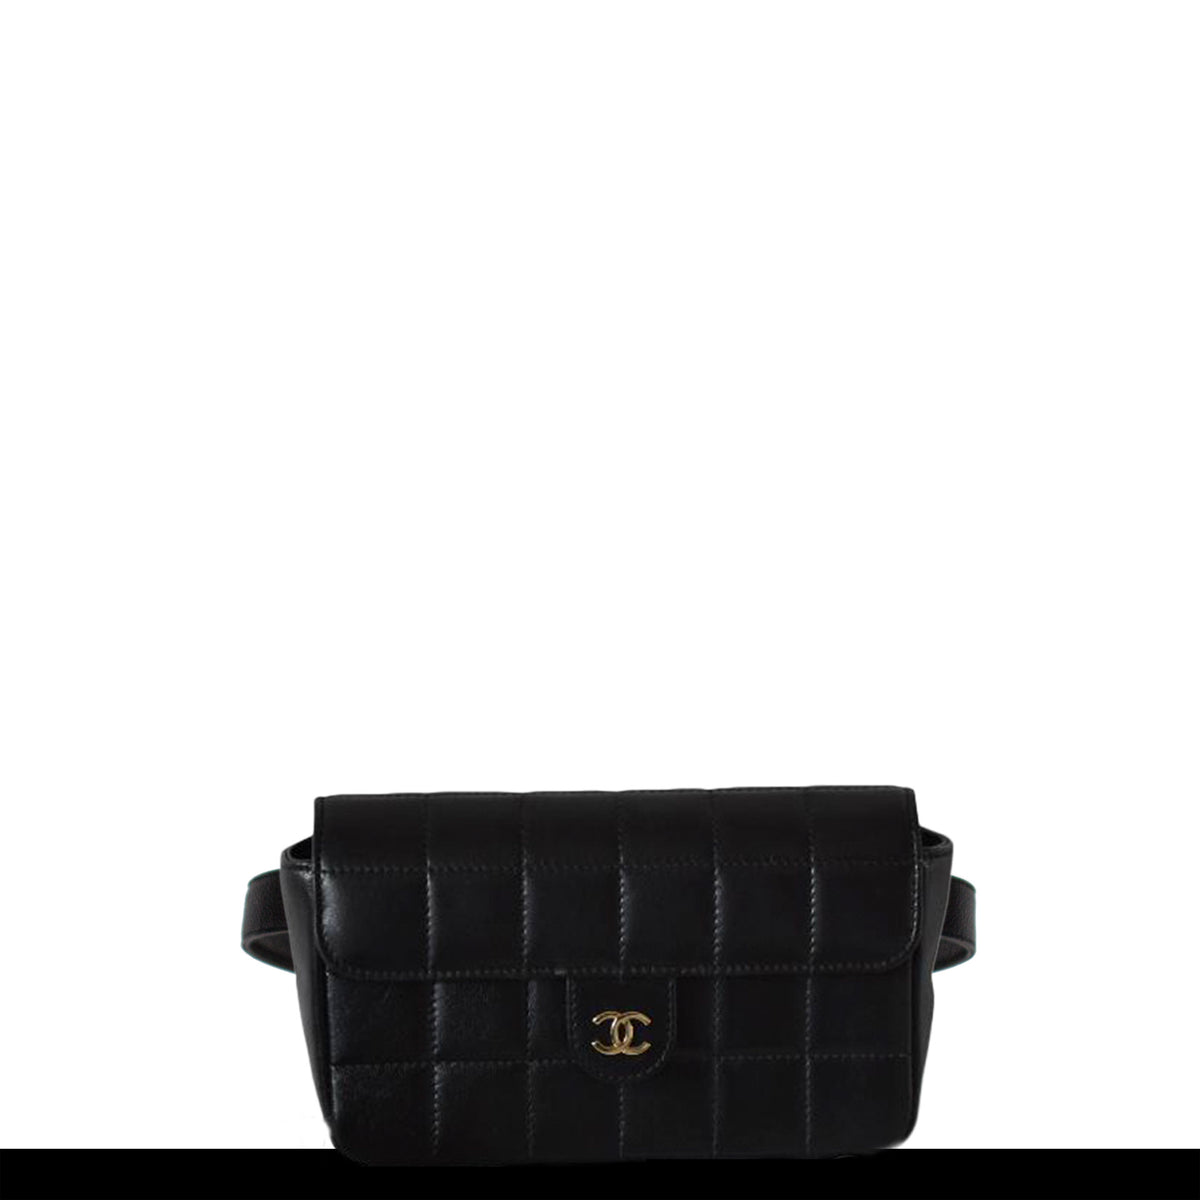 cbe2368897ac Chanel Vintage Square Quilted Fanny Pack Waist Bum Bag – House of Carver